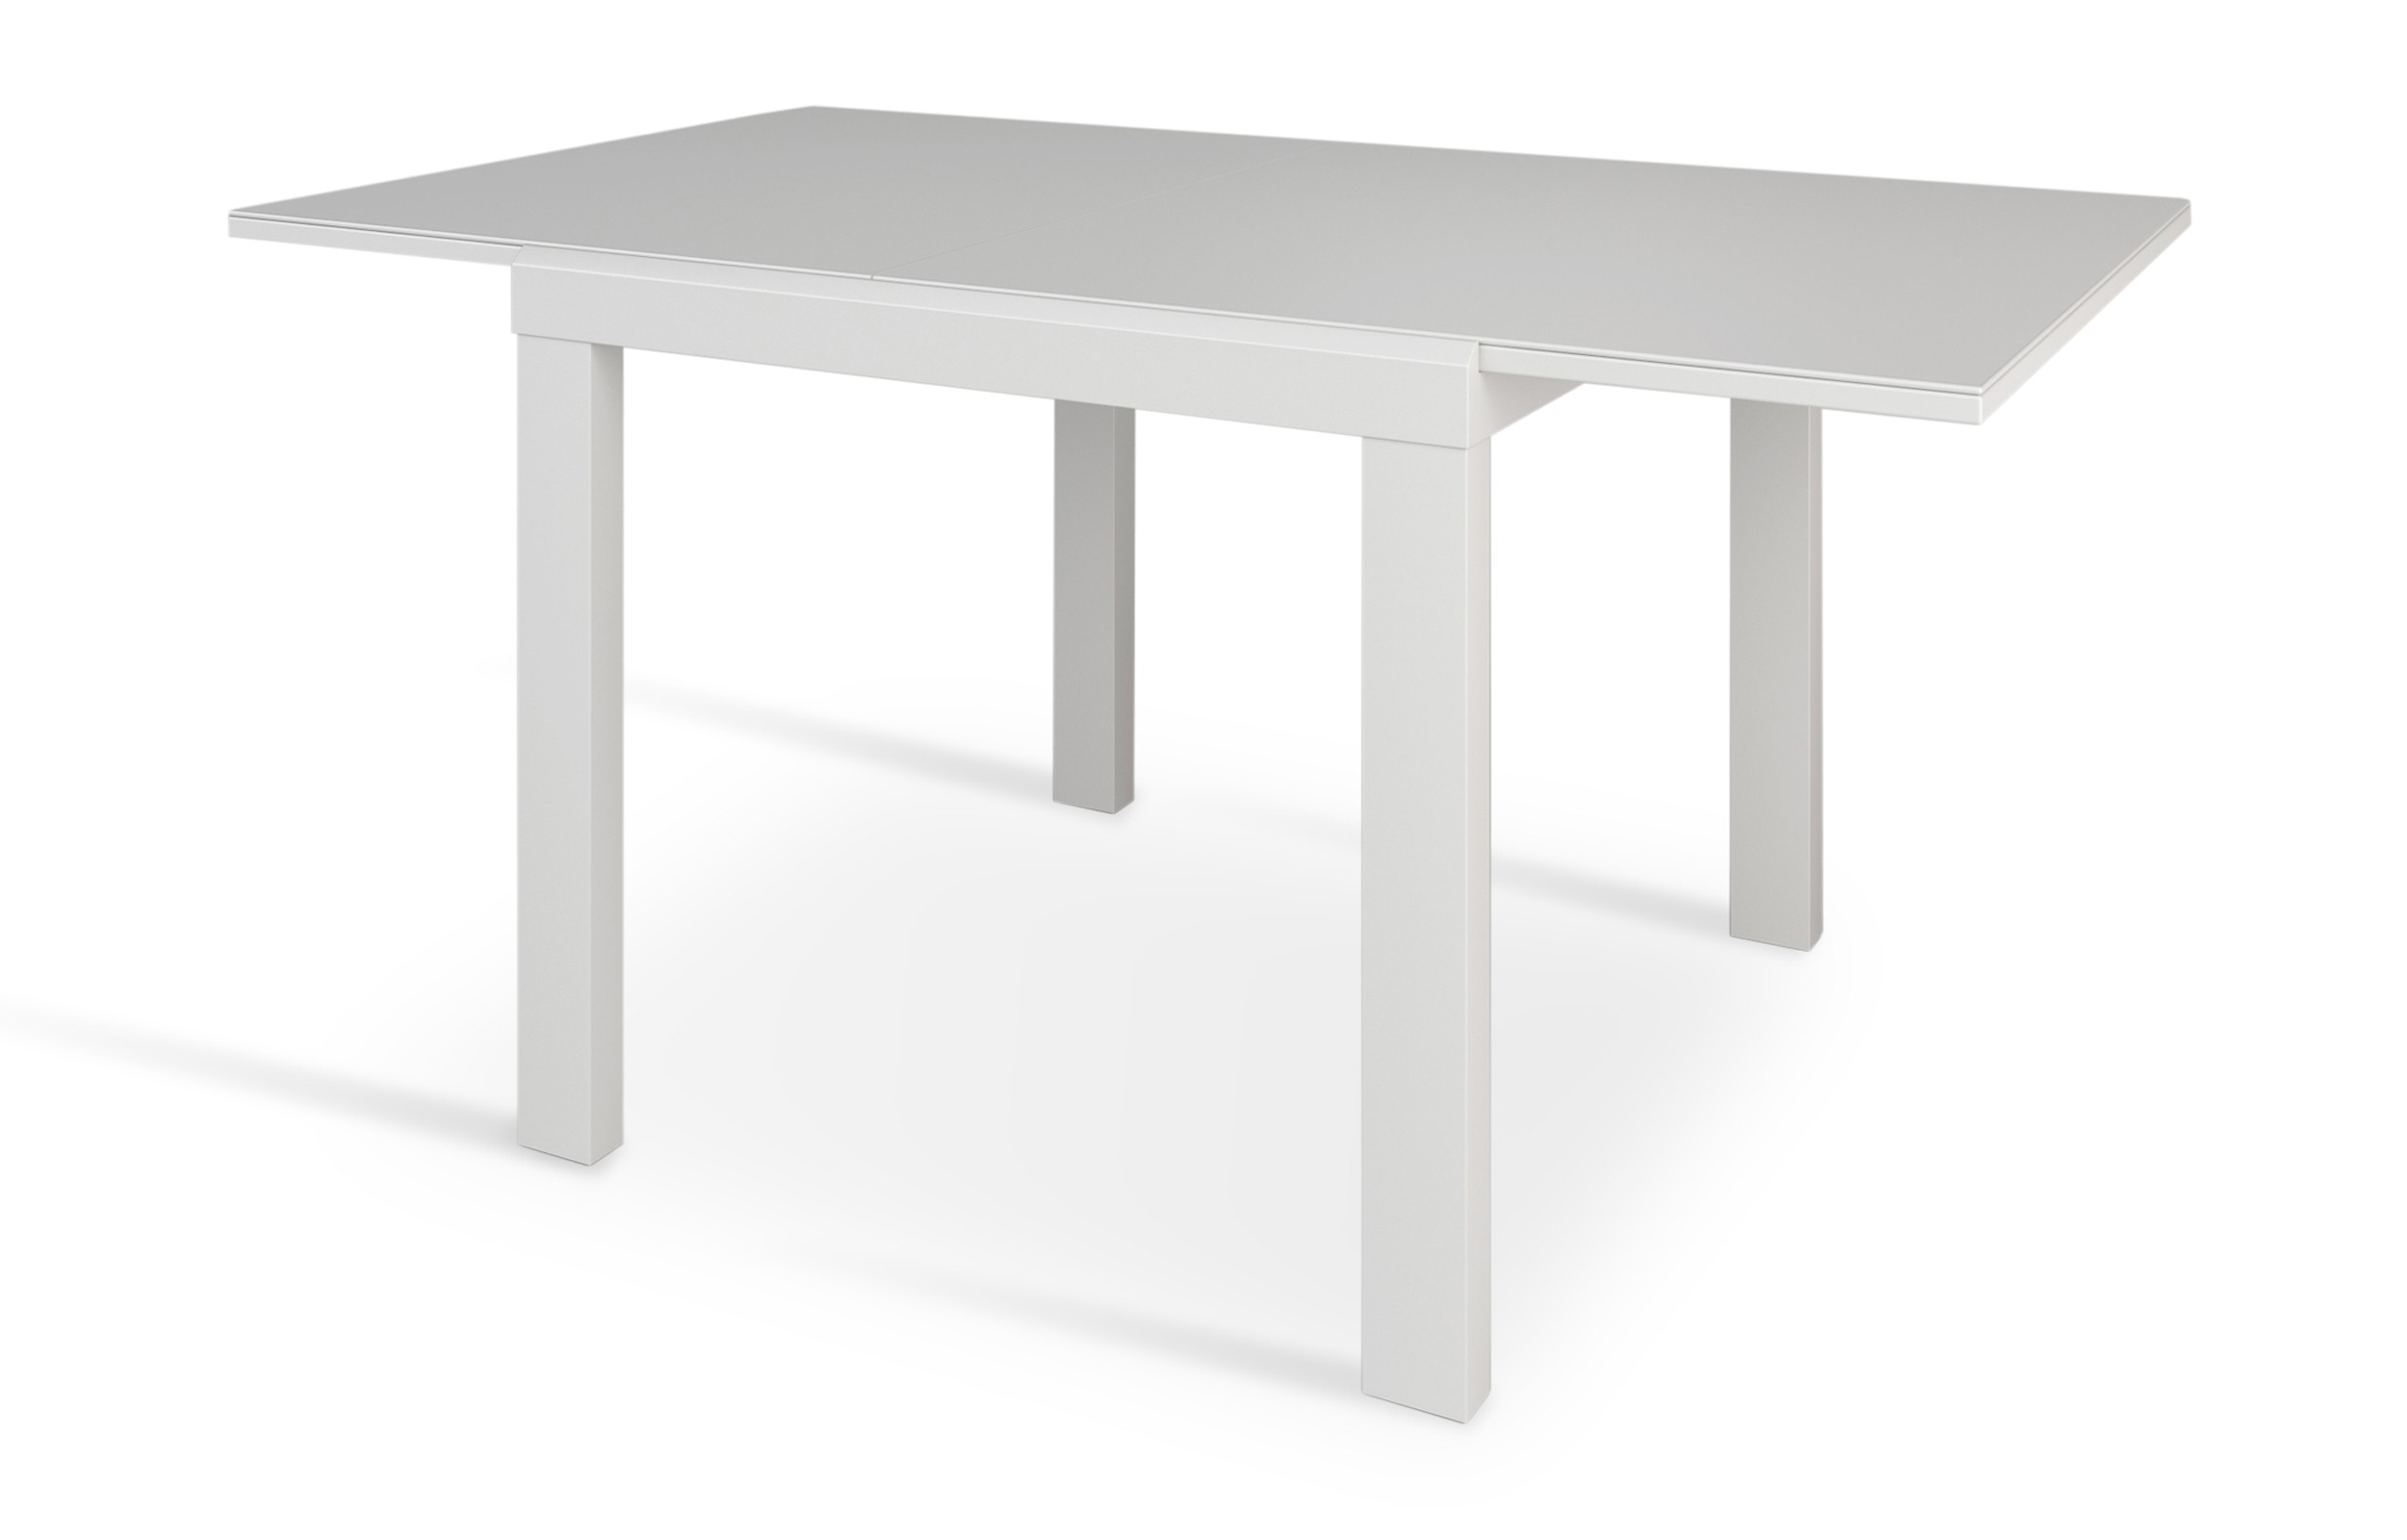 Viesso Throughout Widely Used Glass Folding Dining Tables (View 24 of 25)